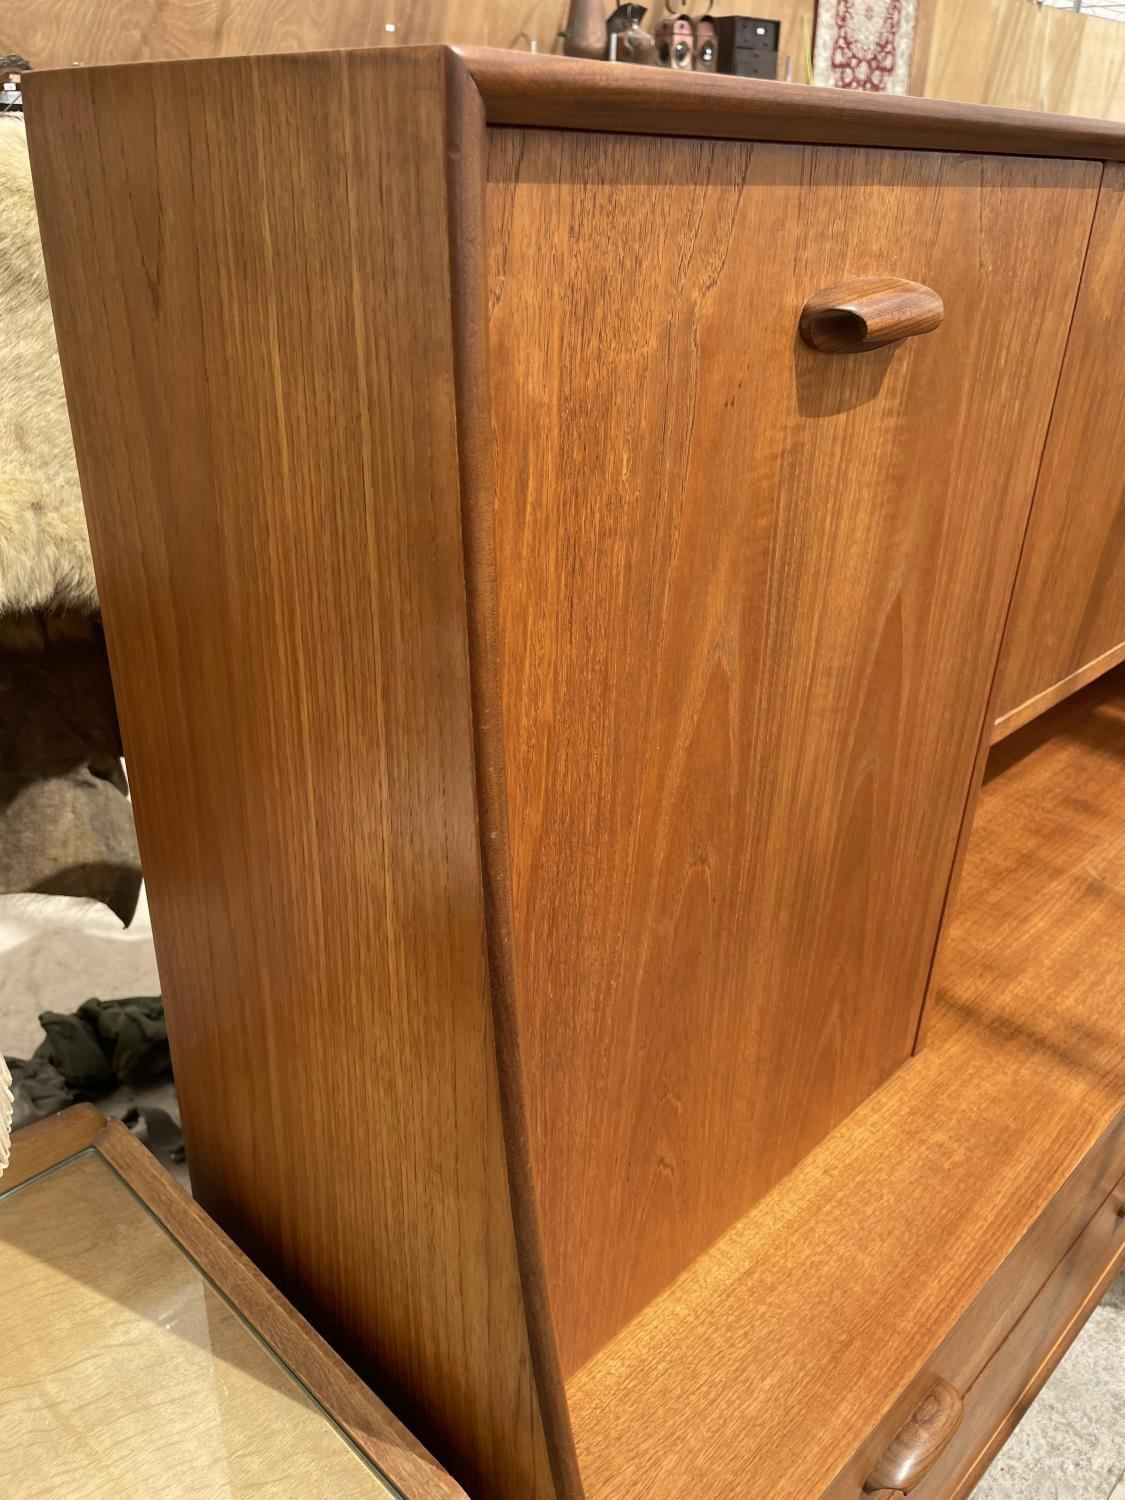 A G PLAN RETRO TEAK SIDEBOARD WITH UPPER CABINET - Image 3 of 8